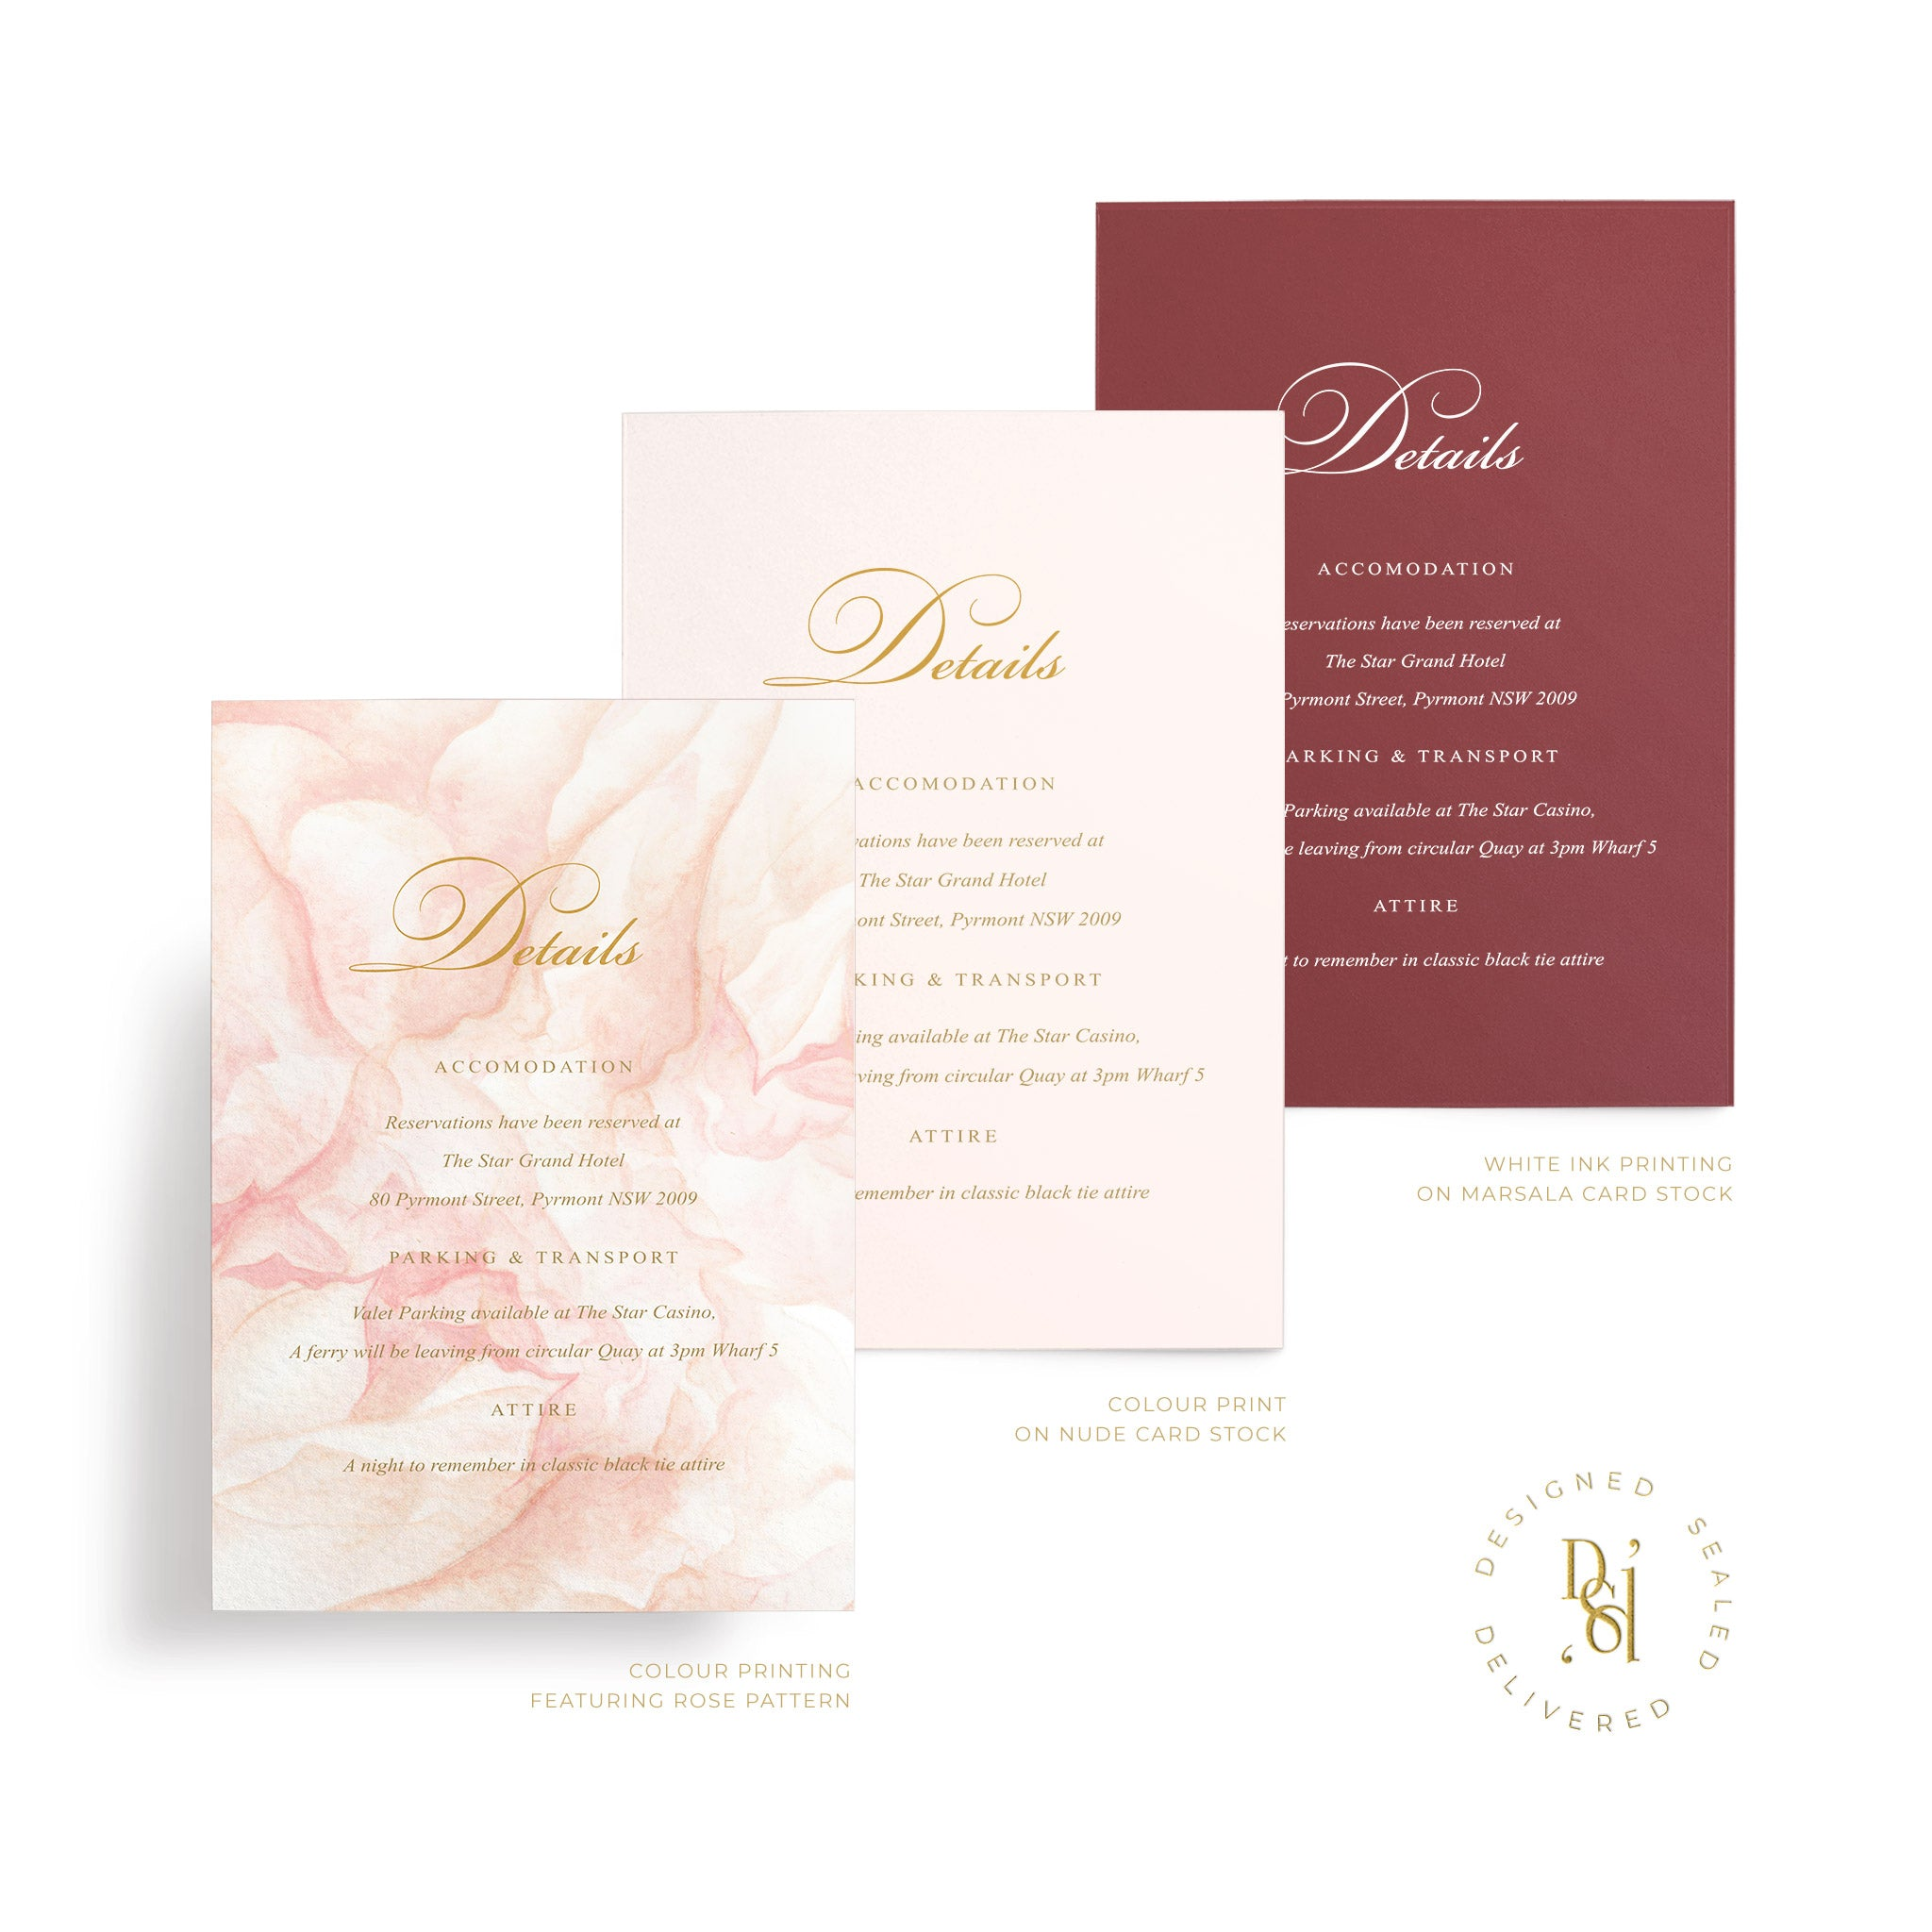 Rosé Collection: Details card in variety of print options; rosé pattern print, colour print, white ink